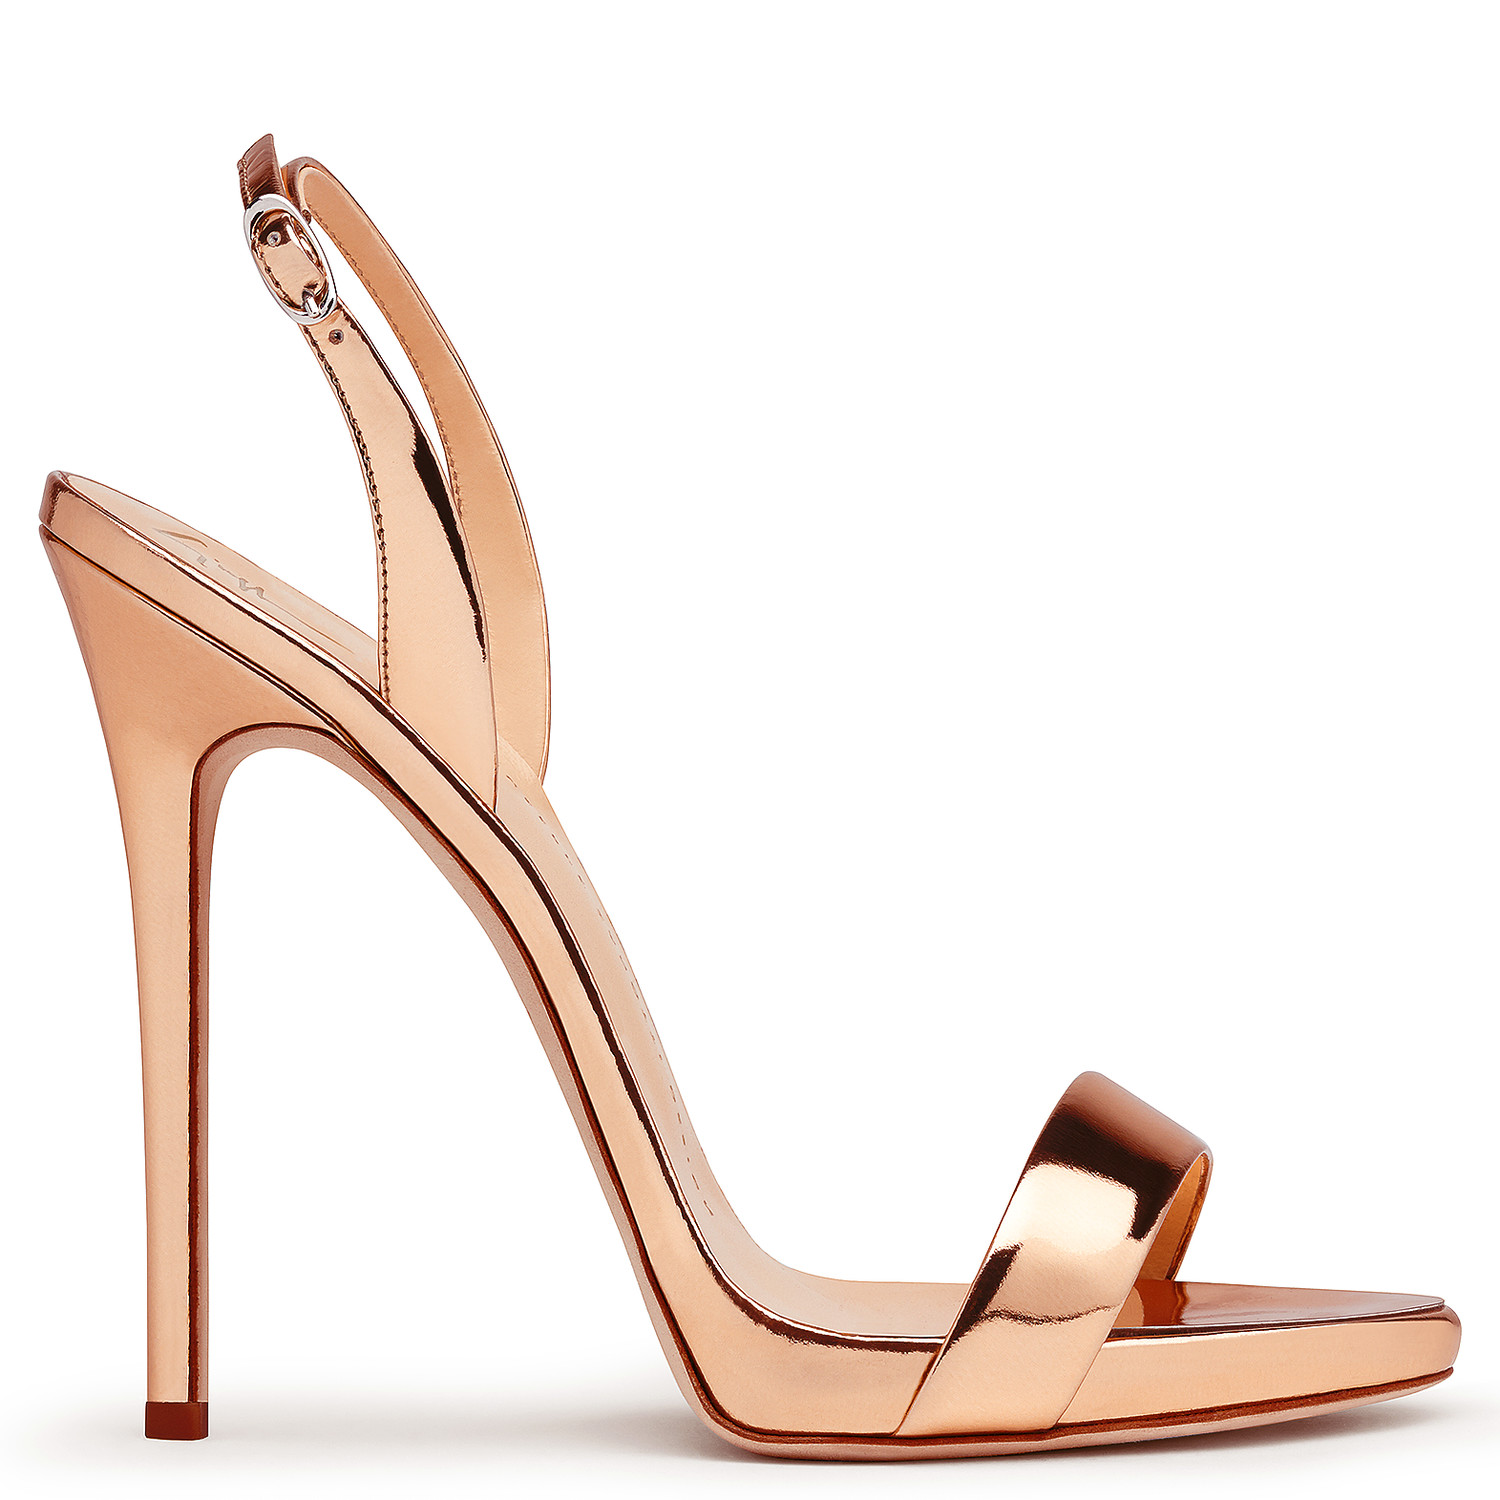 Get the best deals on steve madden rose gold shoes and save up to 70% off at Poshmark now! Whatever you're shopping for, we've got it.